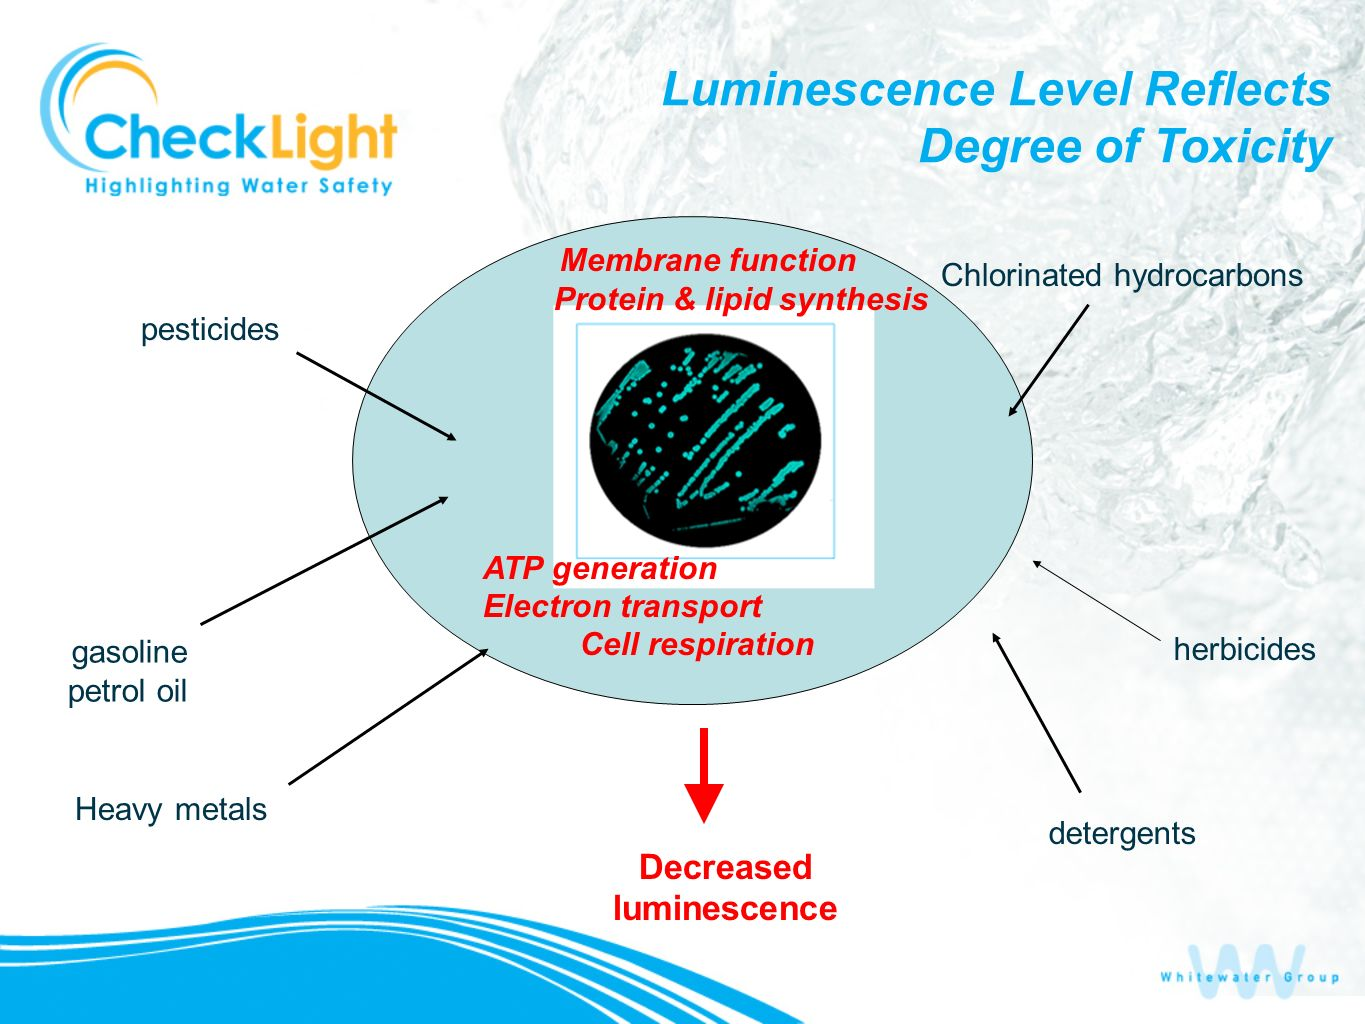 Decreased luminescence